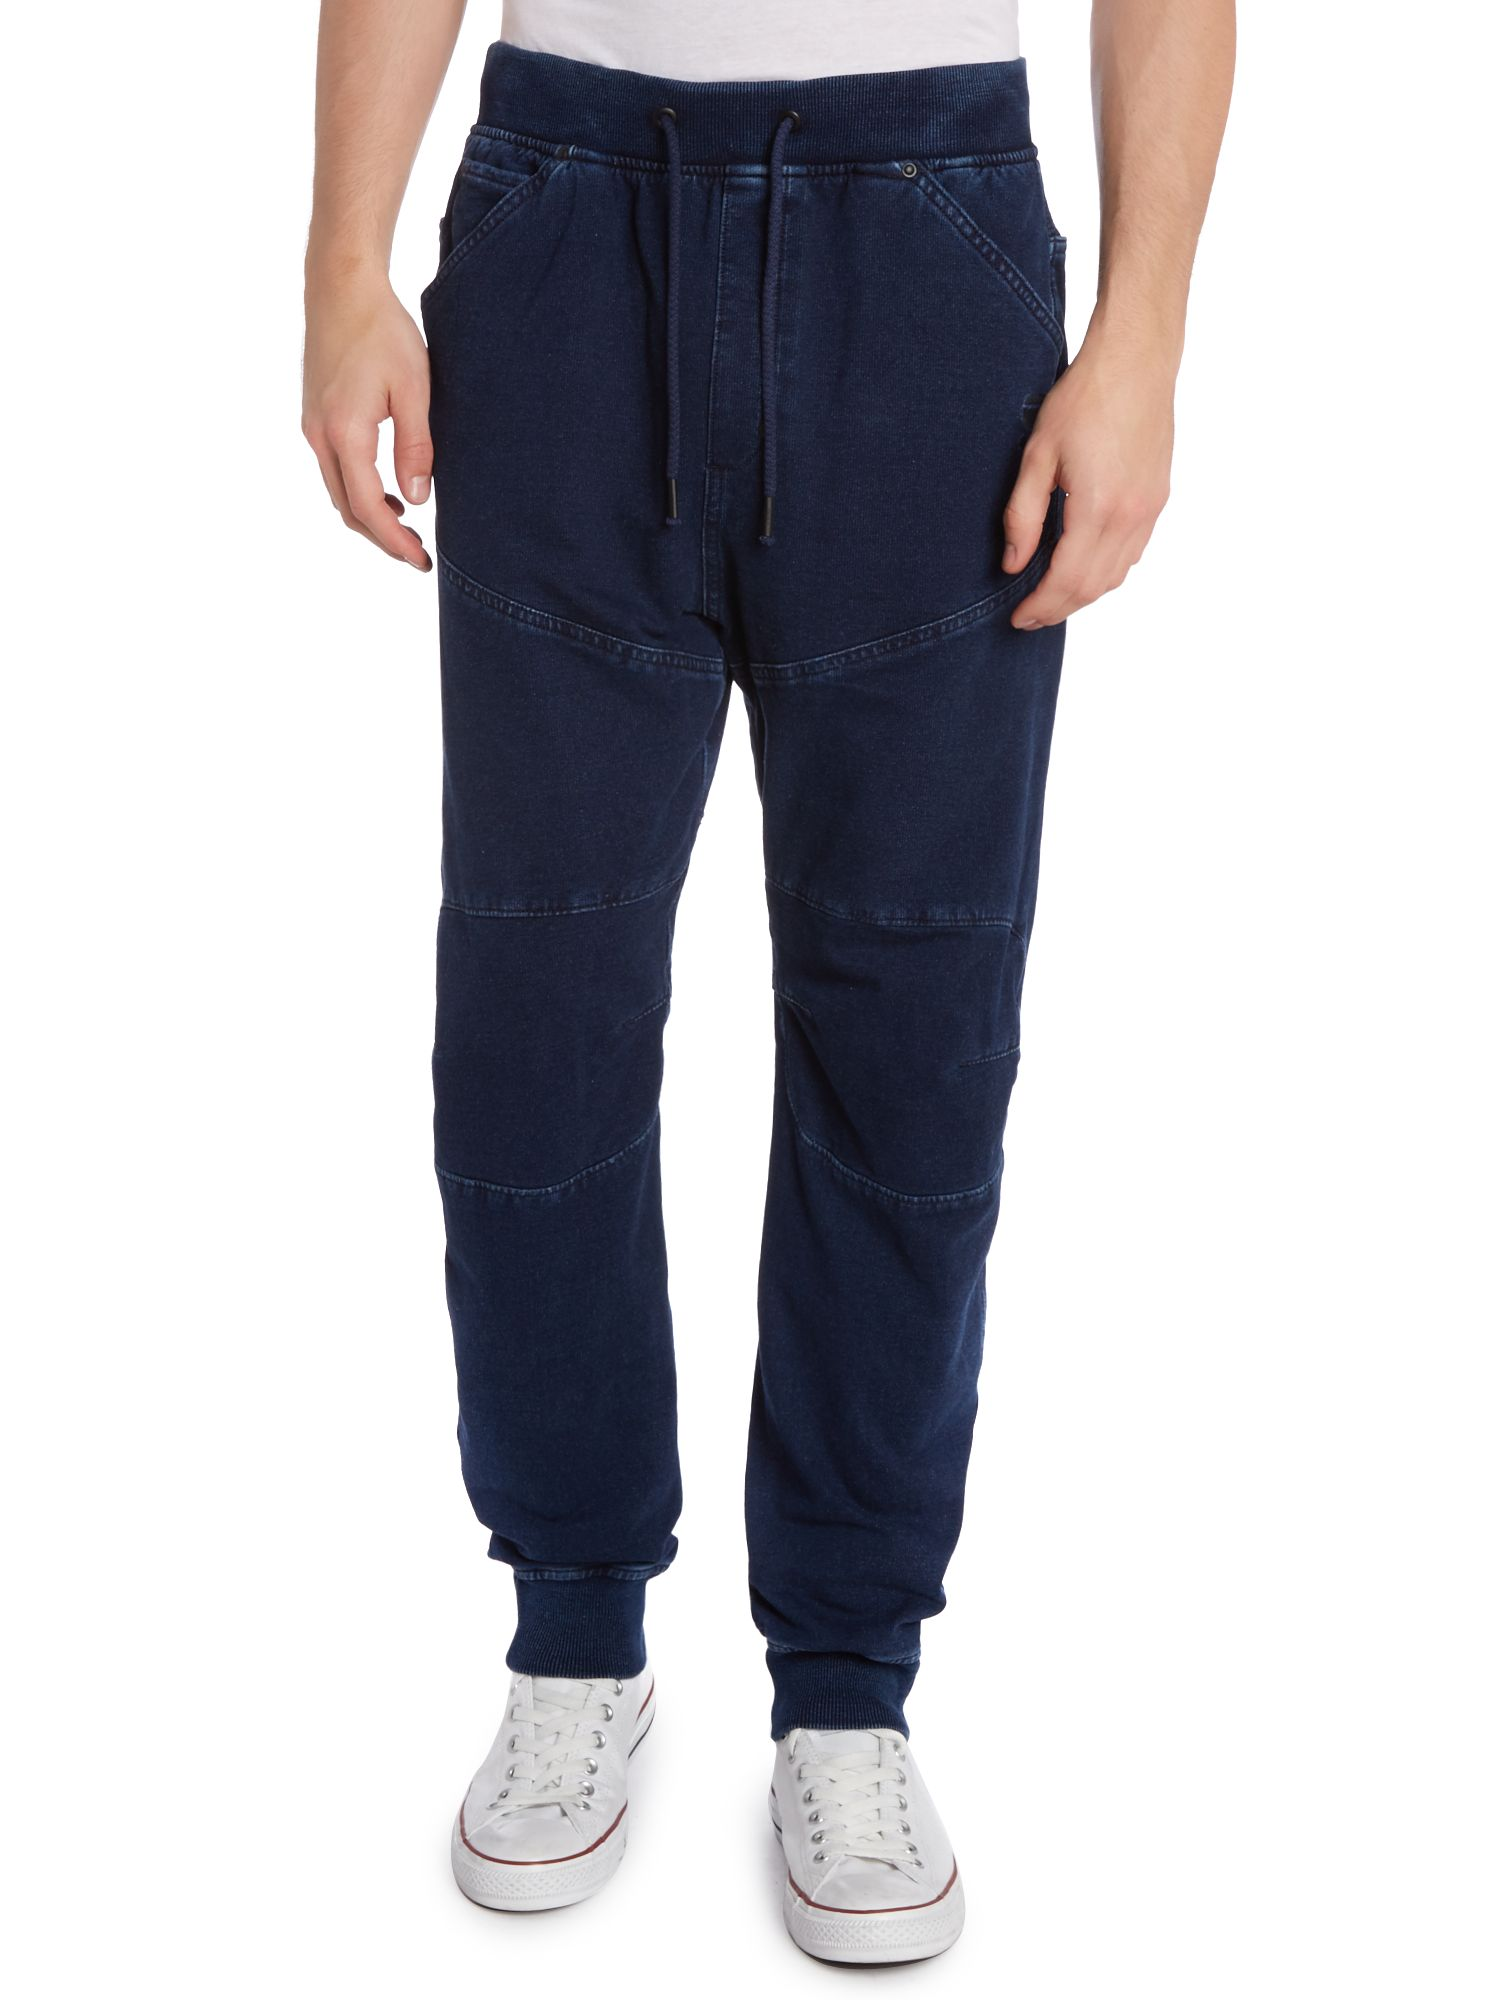 Jean jogging bottoms